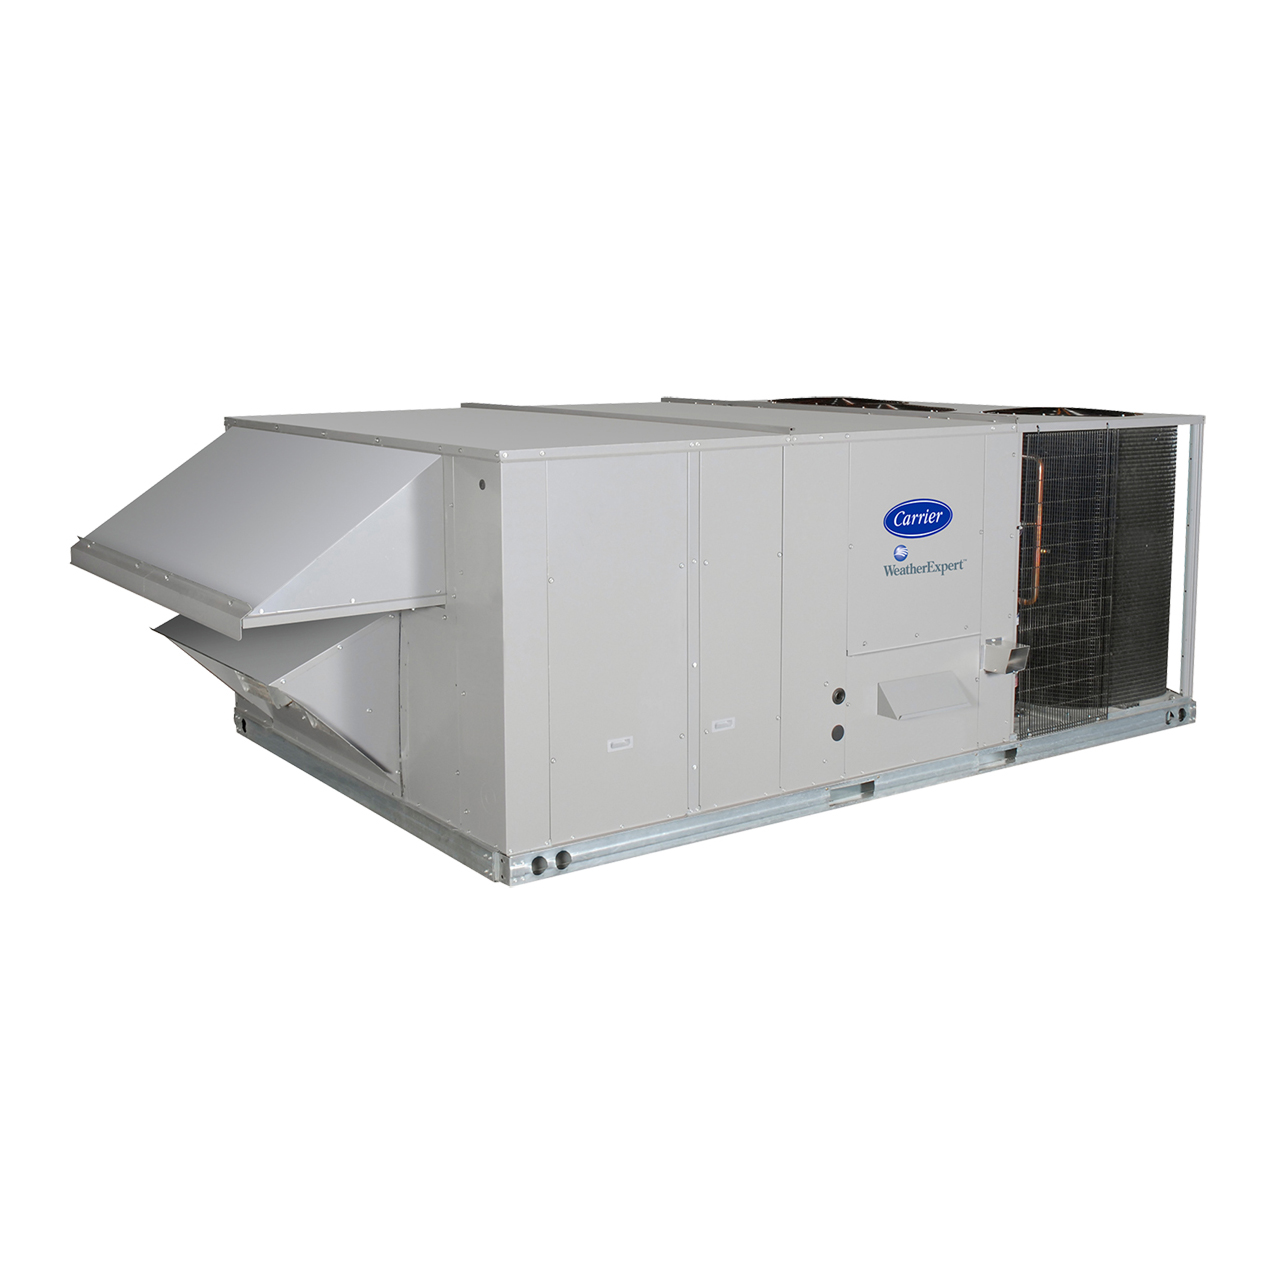 "WeatherMaker® 50TCQ rooftop units were designed to be easy to install, maintain, and operate, with customer-requested features including a gage port, centralized control center, plug-and-play accessory board, ""no-strip screw"" collars, and hinged access panels."